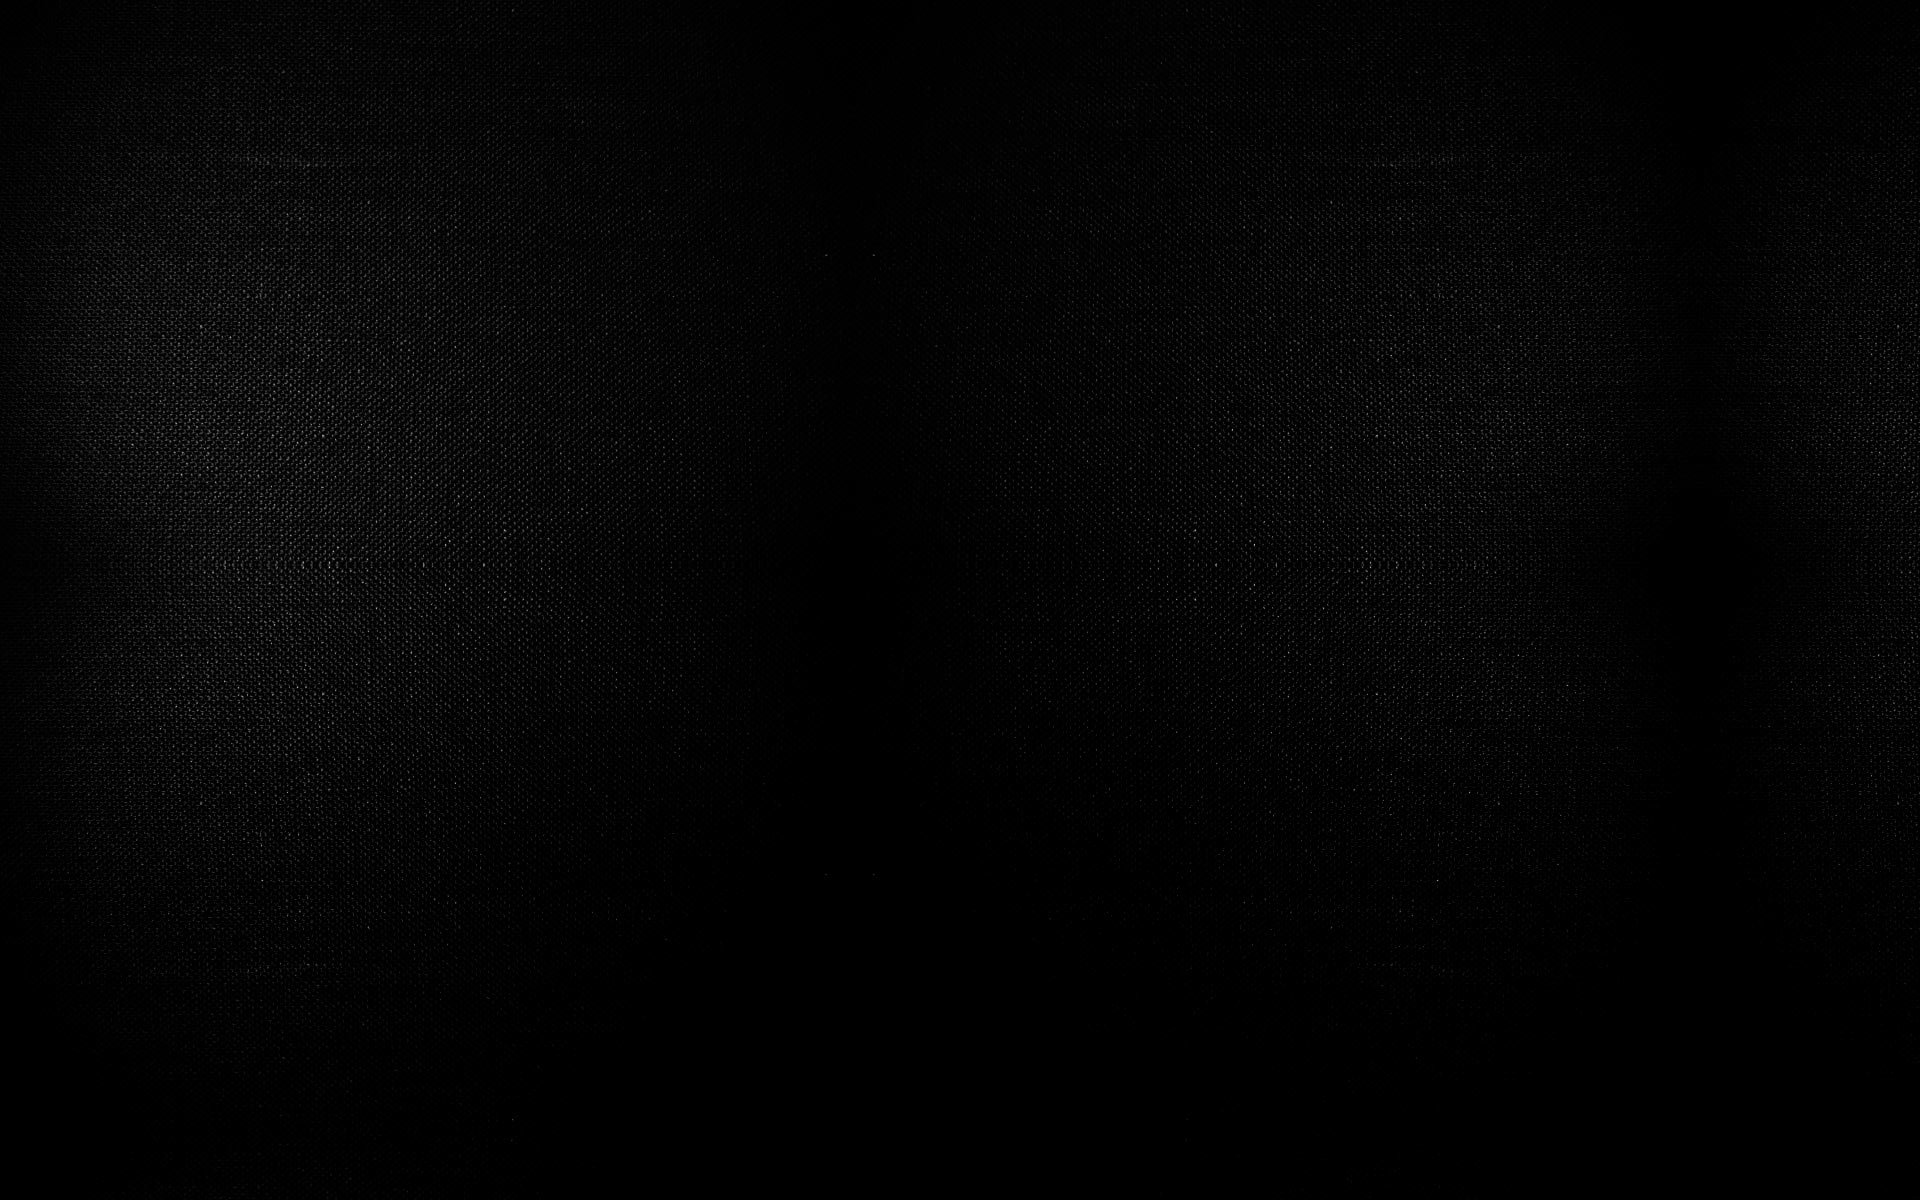 Collection of Black Screen Wallpaper on HDWallpapers